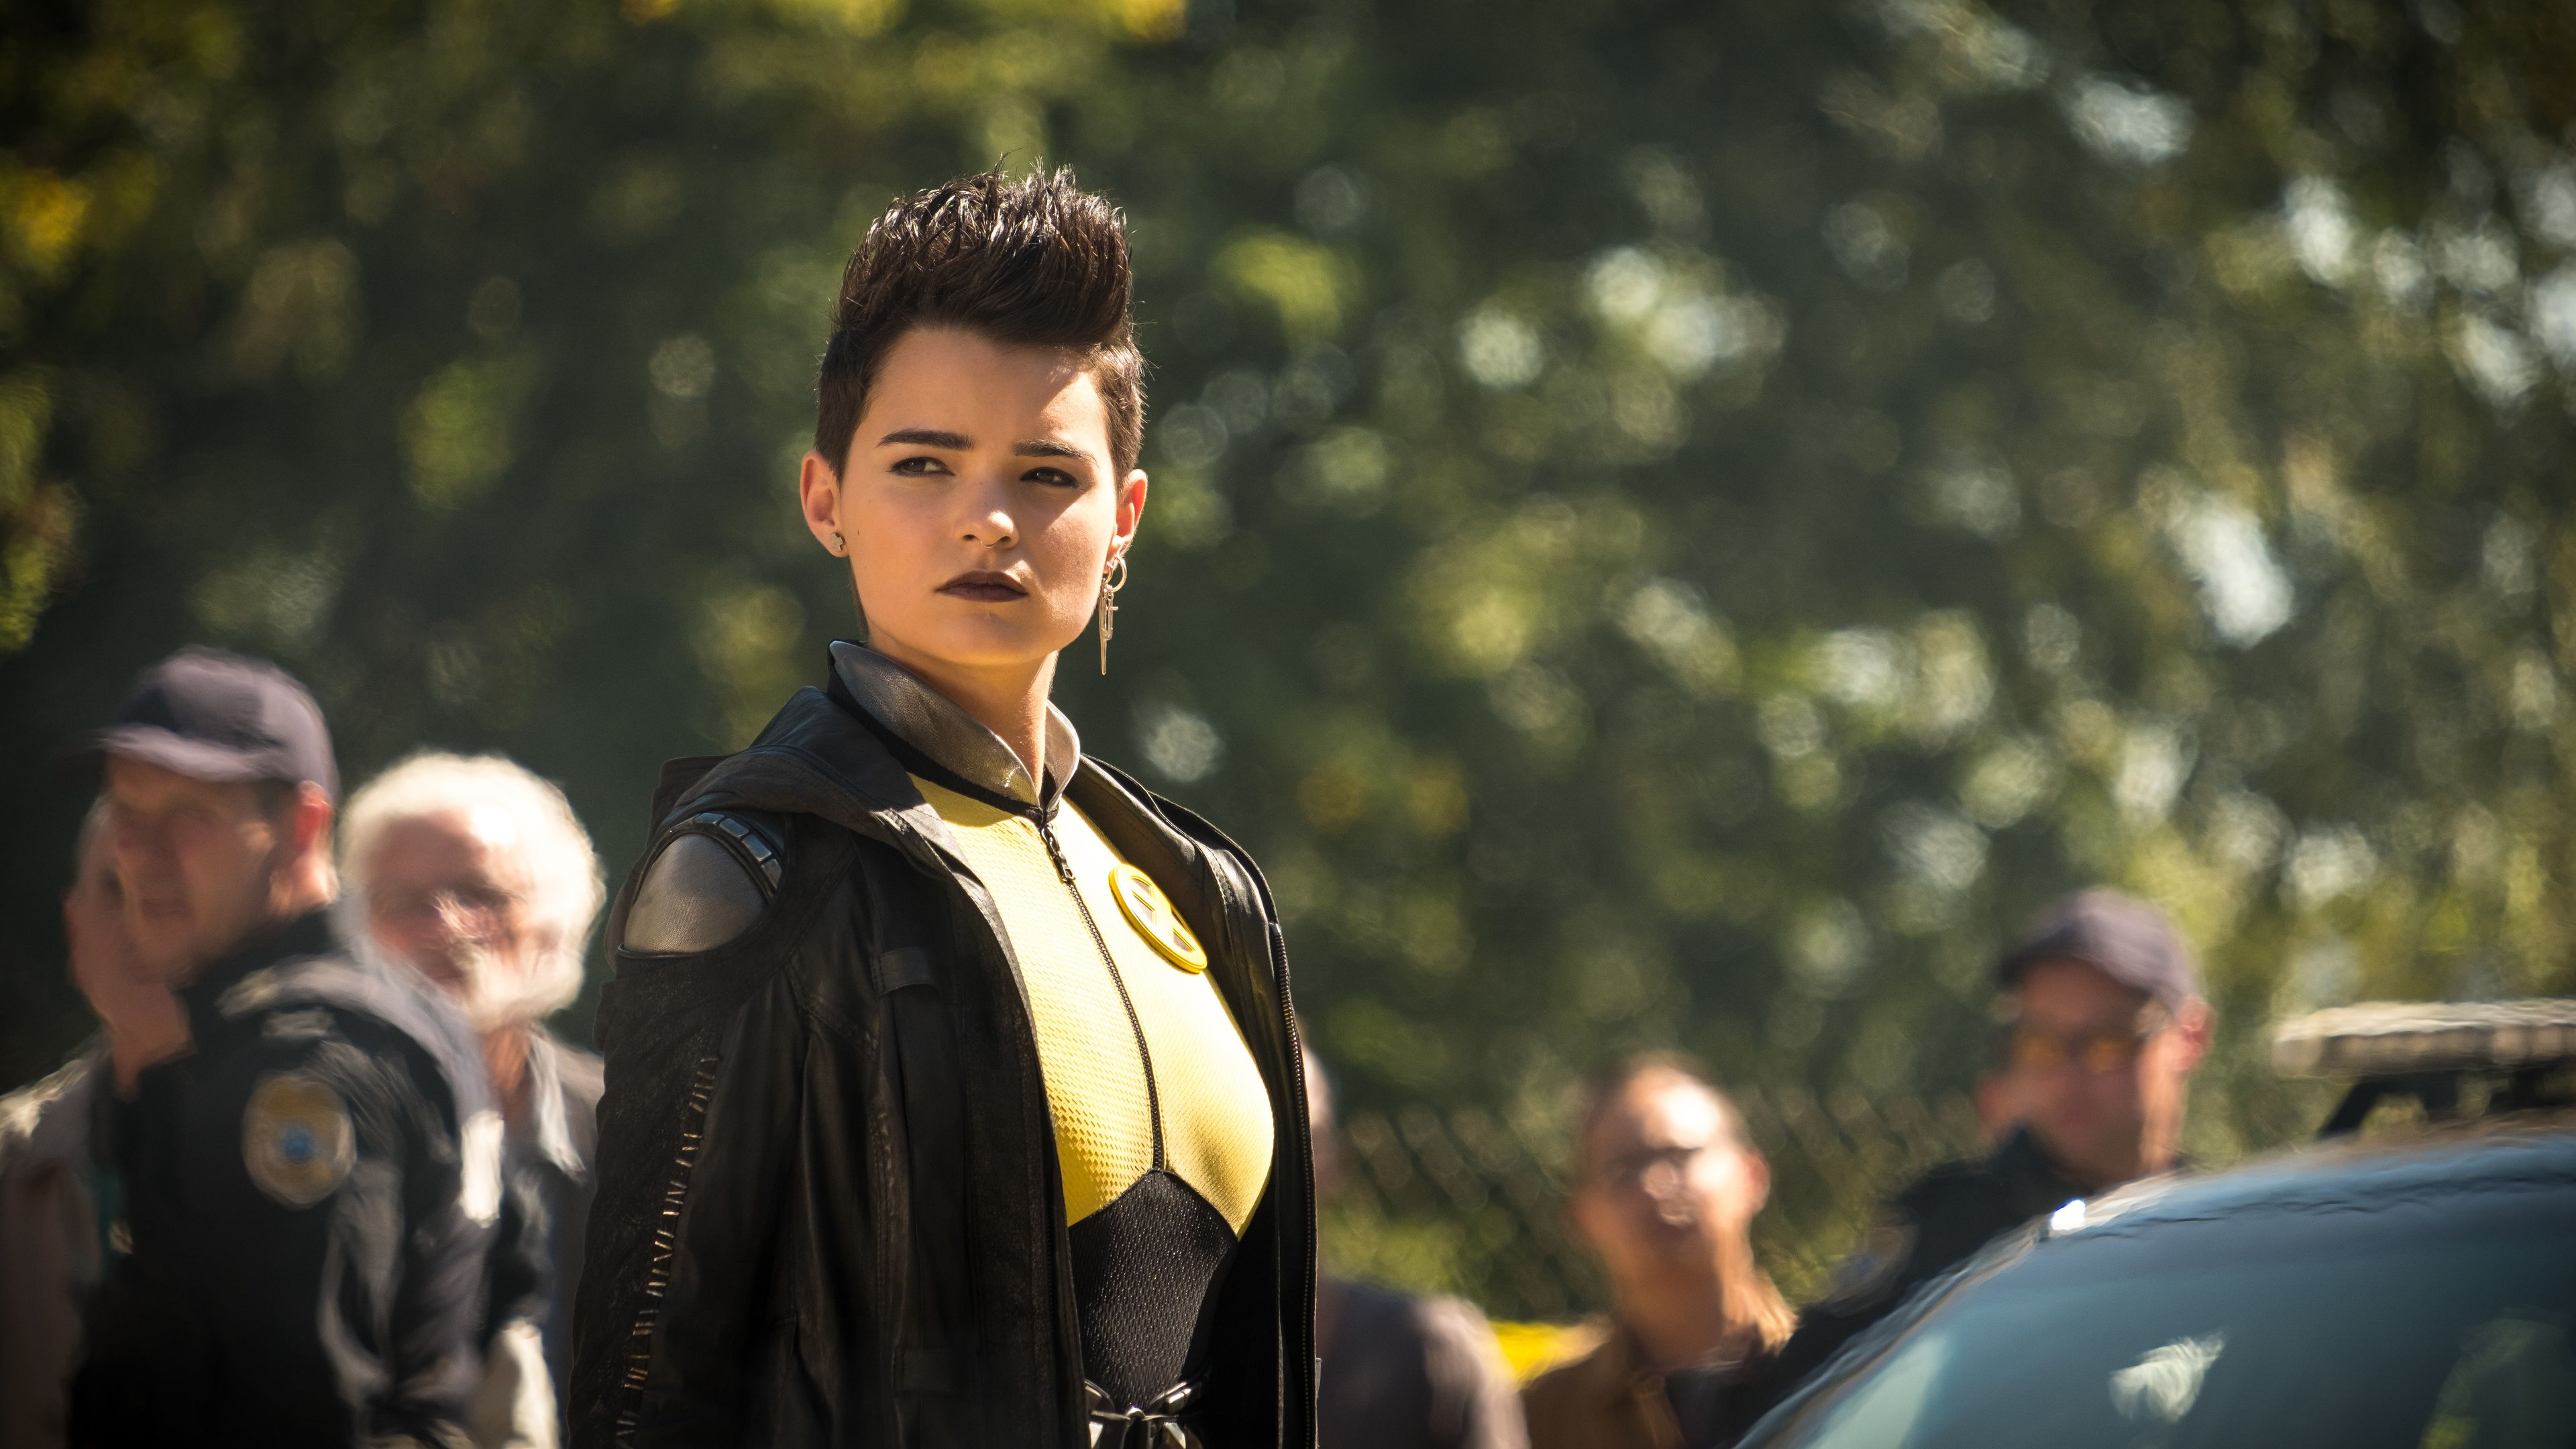 Negasonic Teenage Warhead In Deadpool 2 Movies Wallpapers Hd Wallpapers Deadpool 2 Wallpapers 5k Wallpapers 4 Teenage Warhead Brianna Hildebrand New Movies